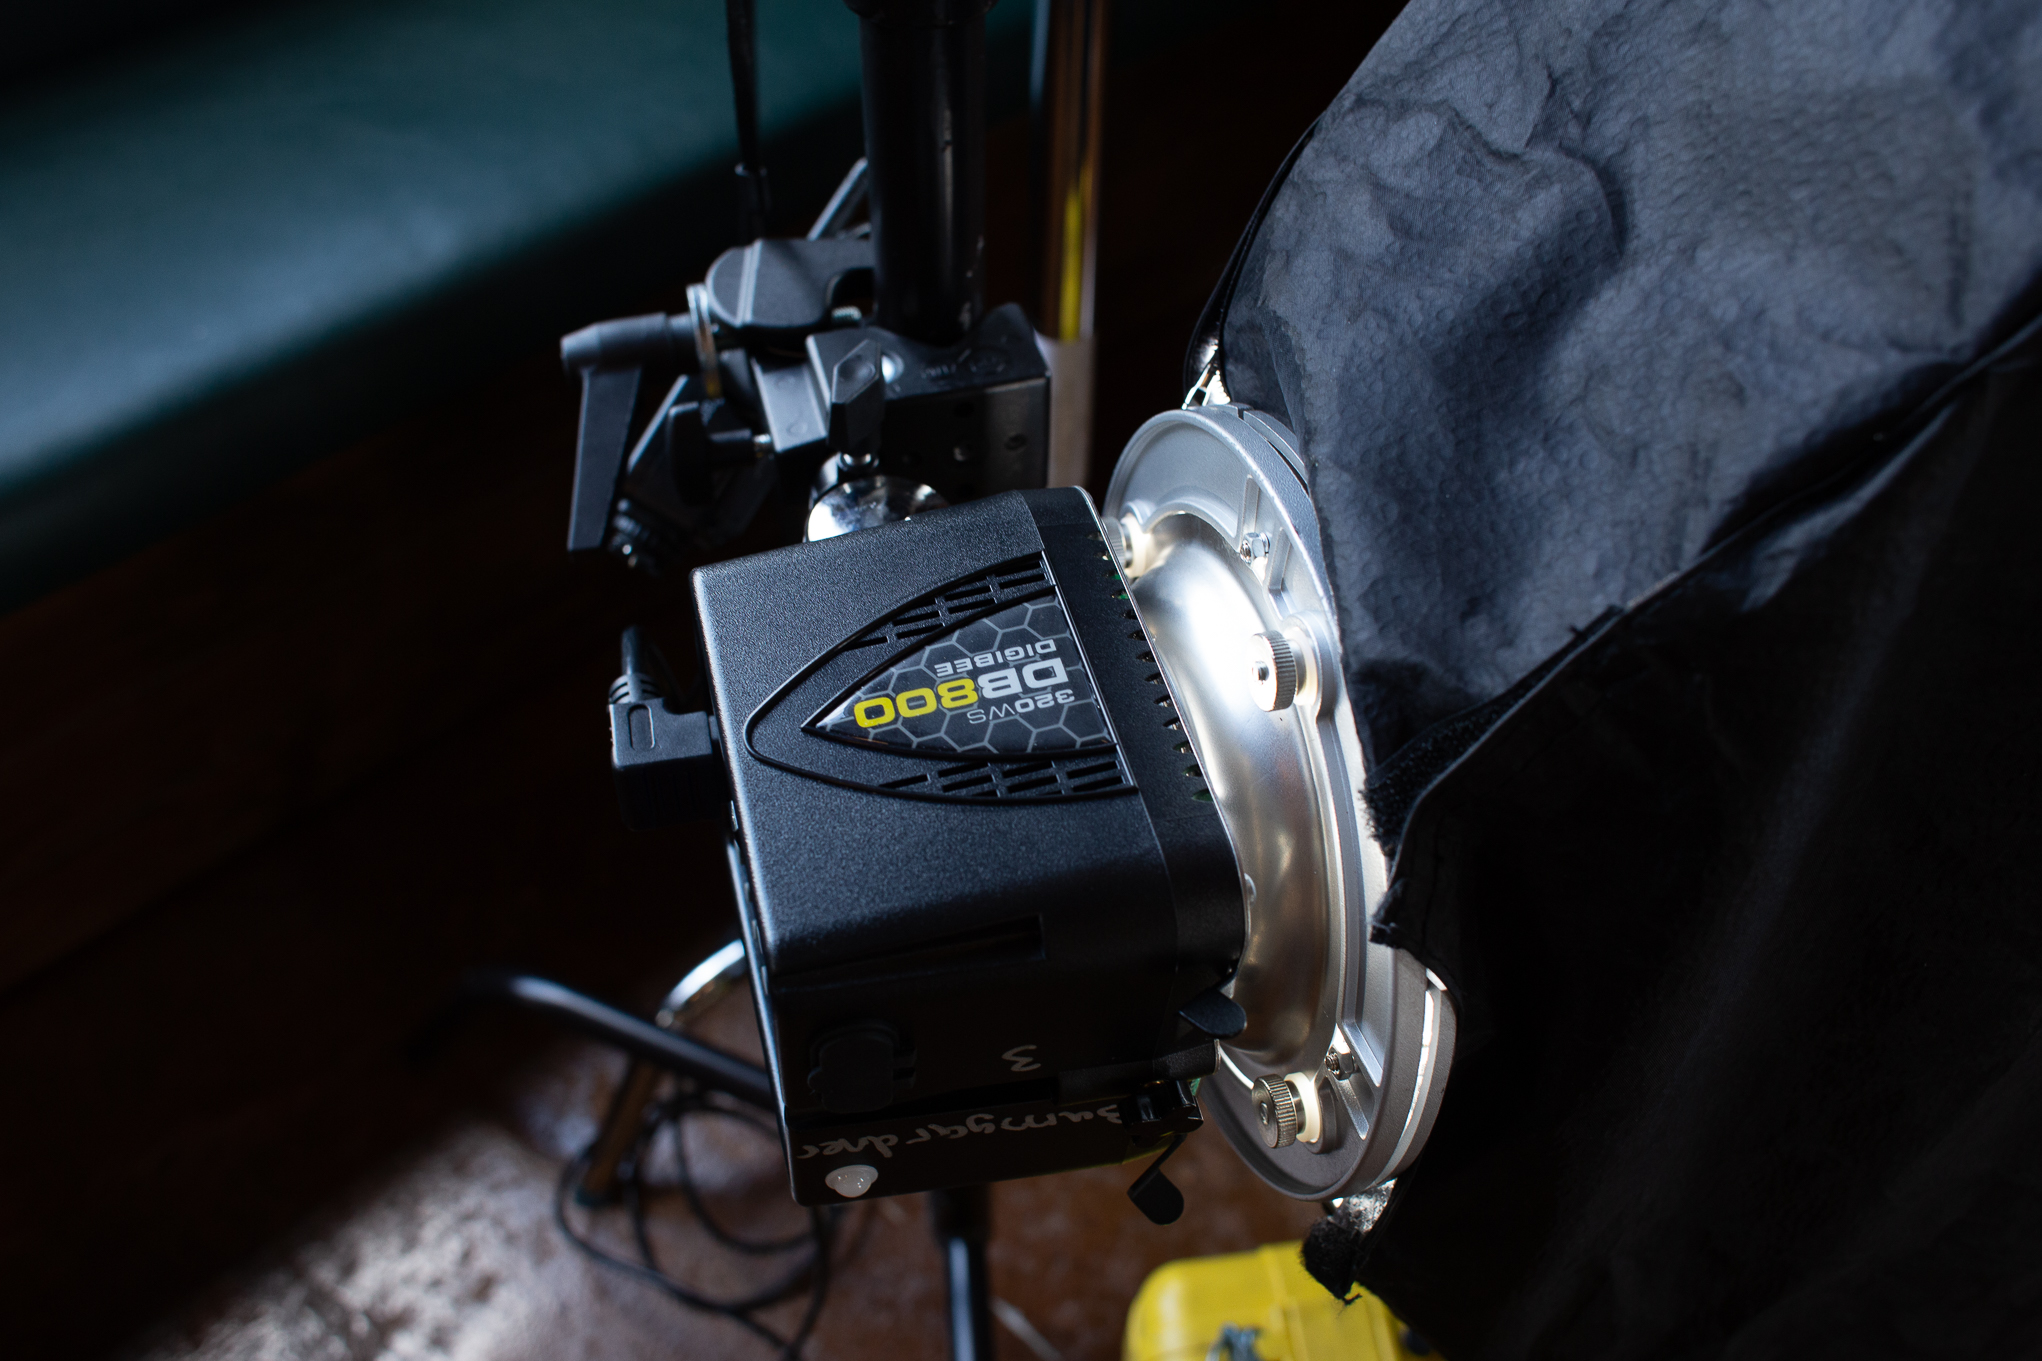 The DigiBee 800 in action. The light was mounted with a super clamp because my 20in c stand was a bit to tall to get the light where I wanted it. The yellow case is actually propping the strip box up to get it angled just right. Even when you have all of the gear you have to come up with solutions to problems on the fly.